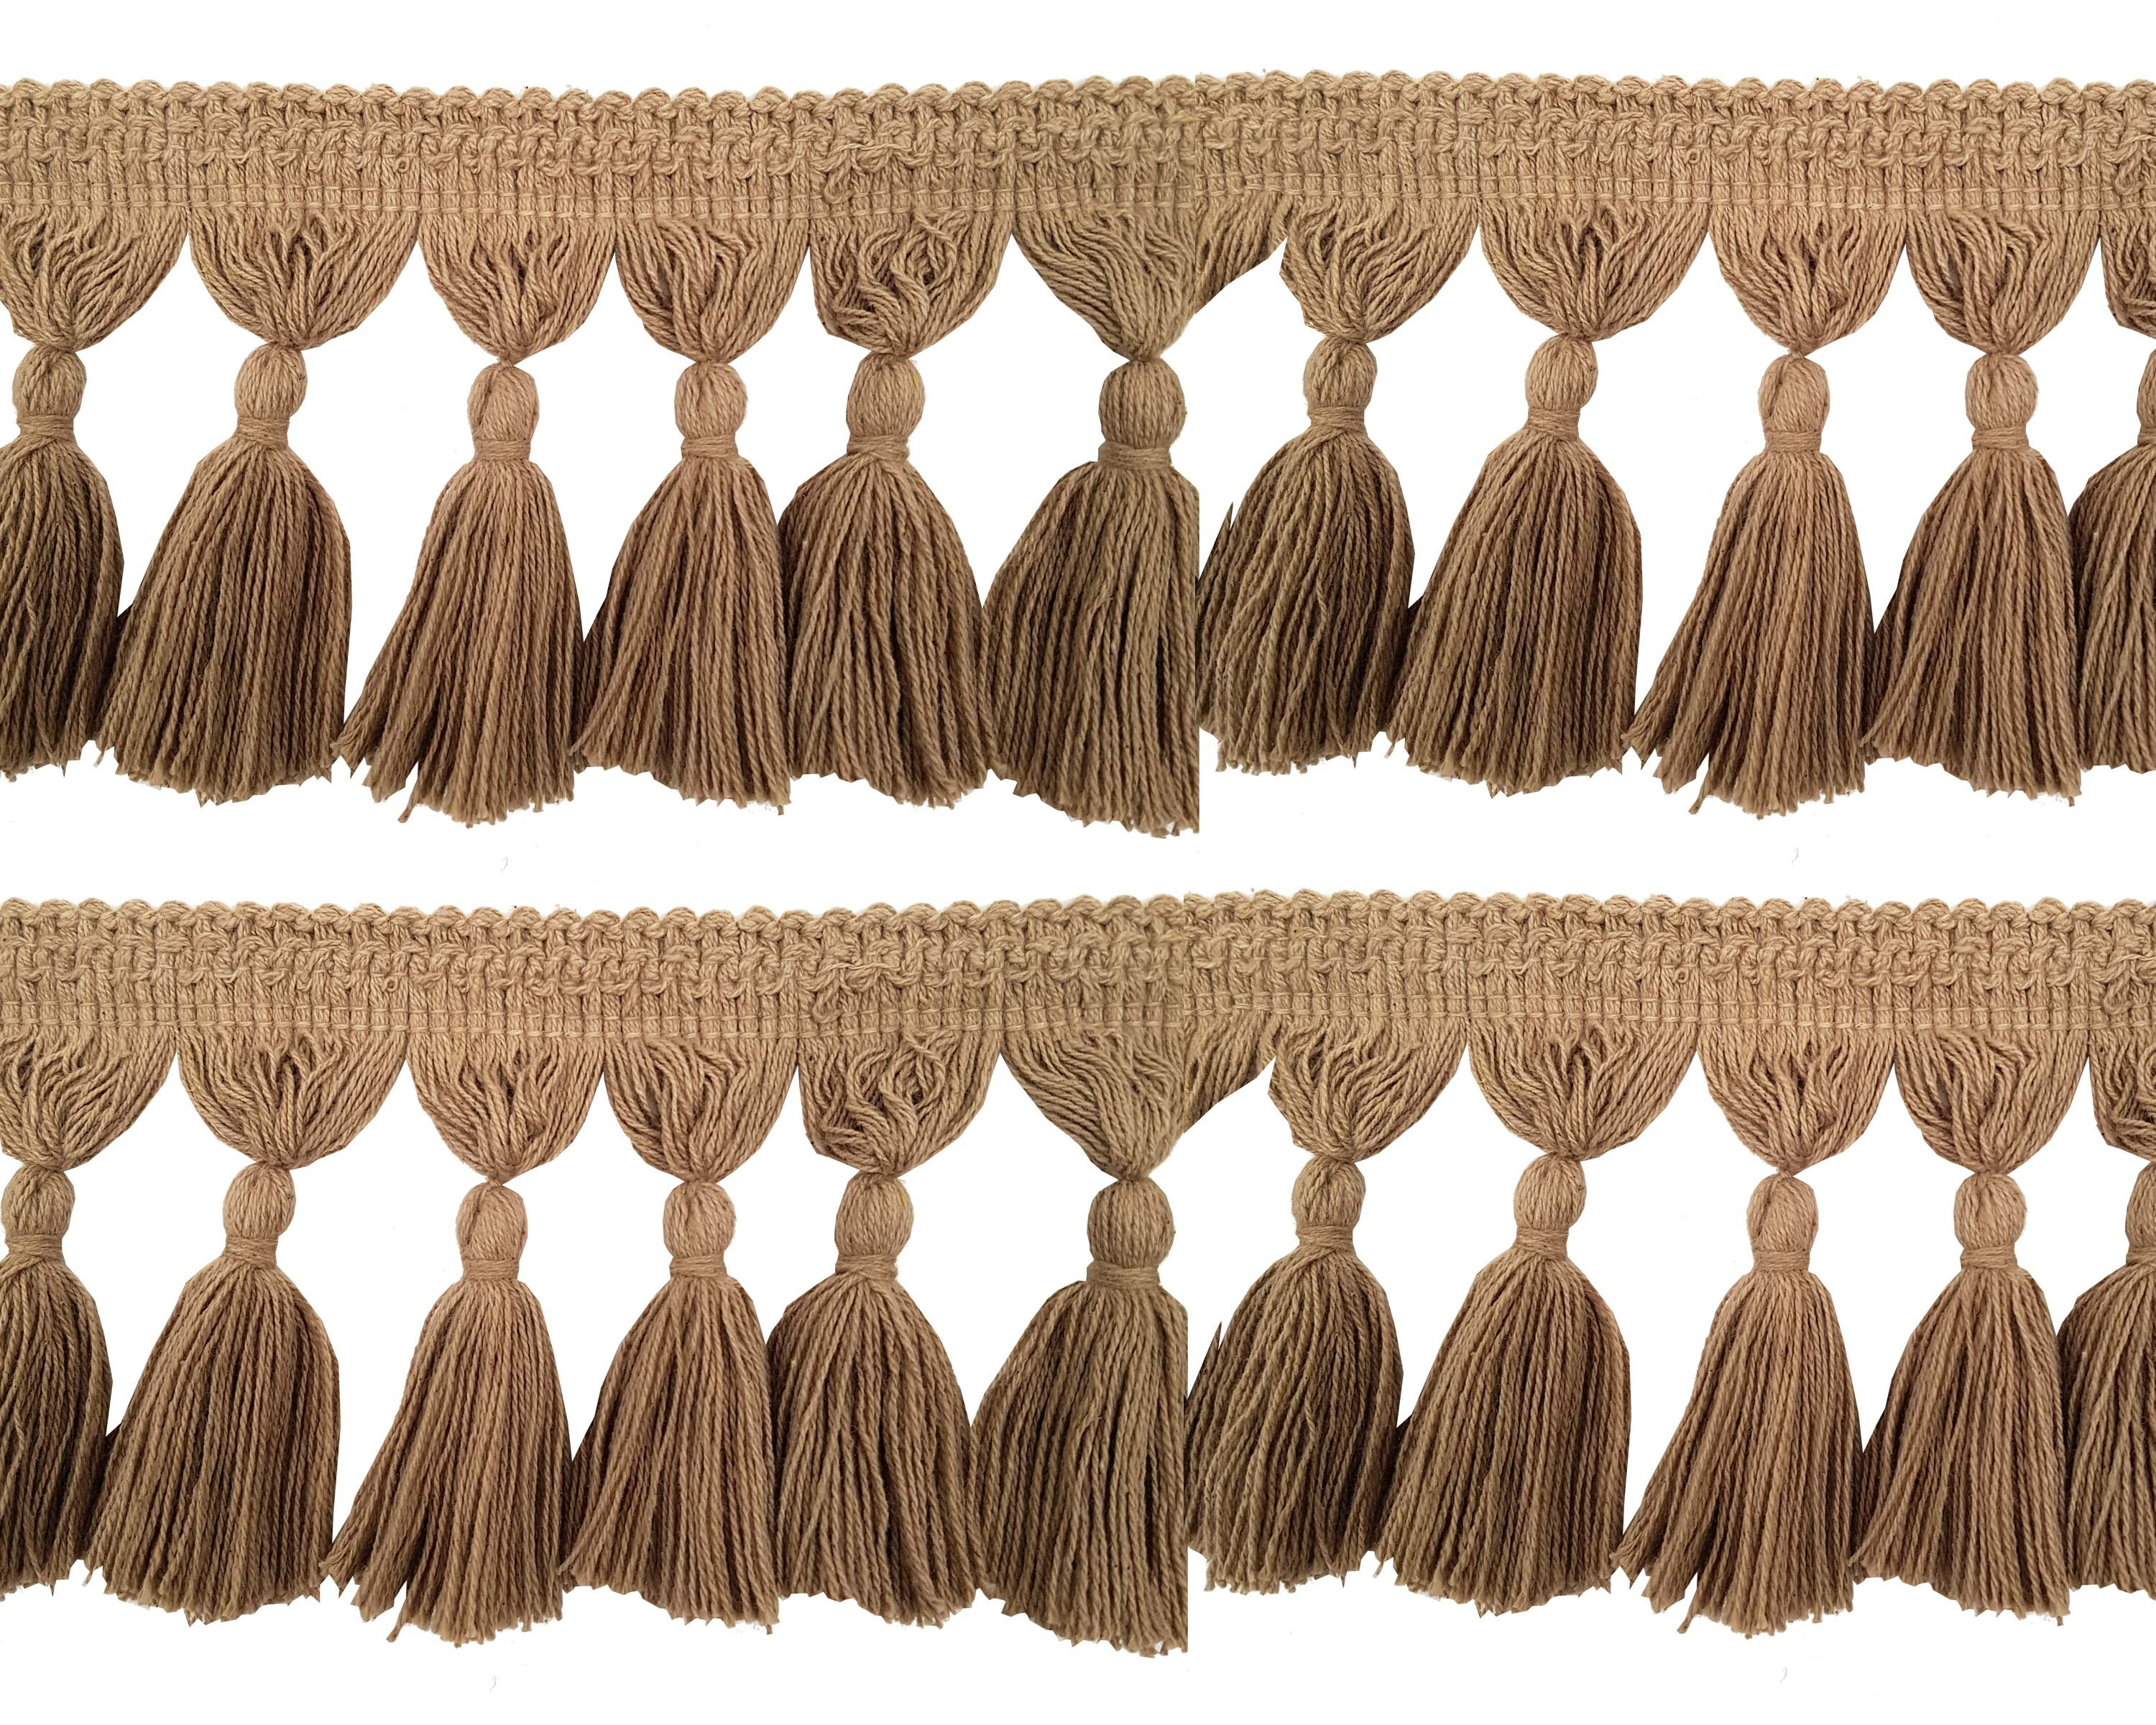 Natural Cotton Tassel Fringing - Jute 9.5cm long price is per metre